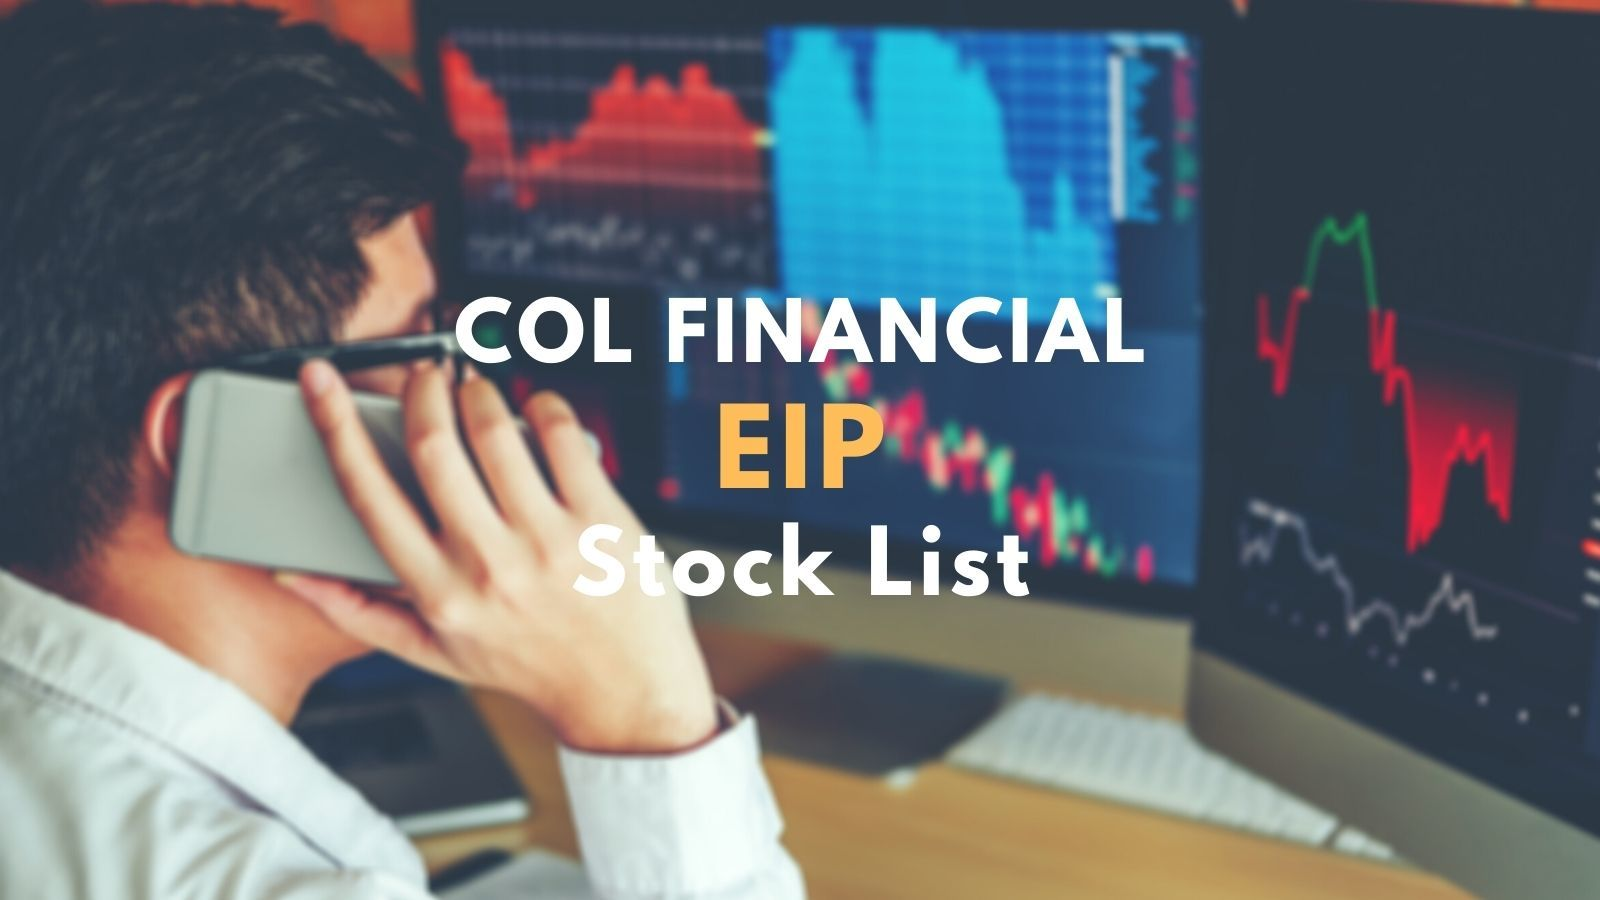 col financial easy investment program EIP stock list